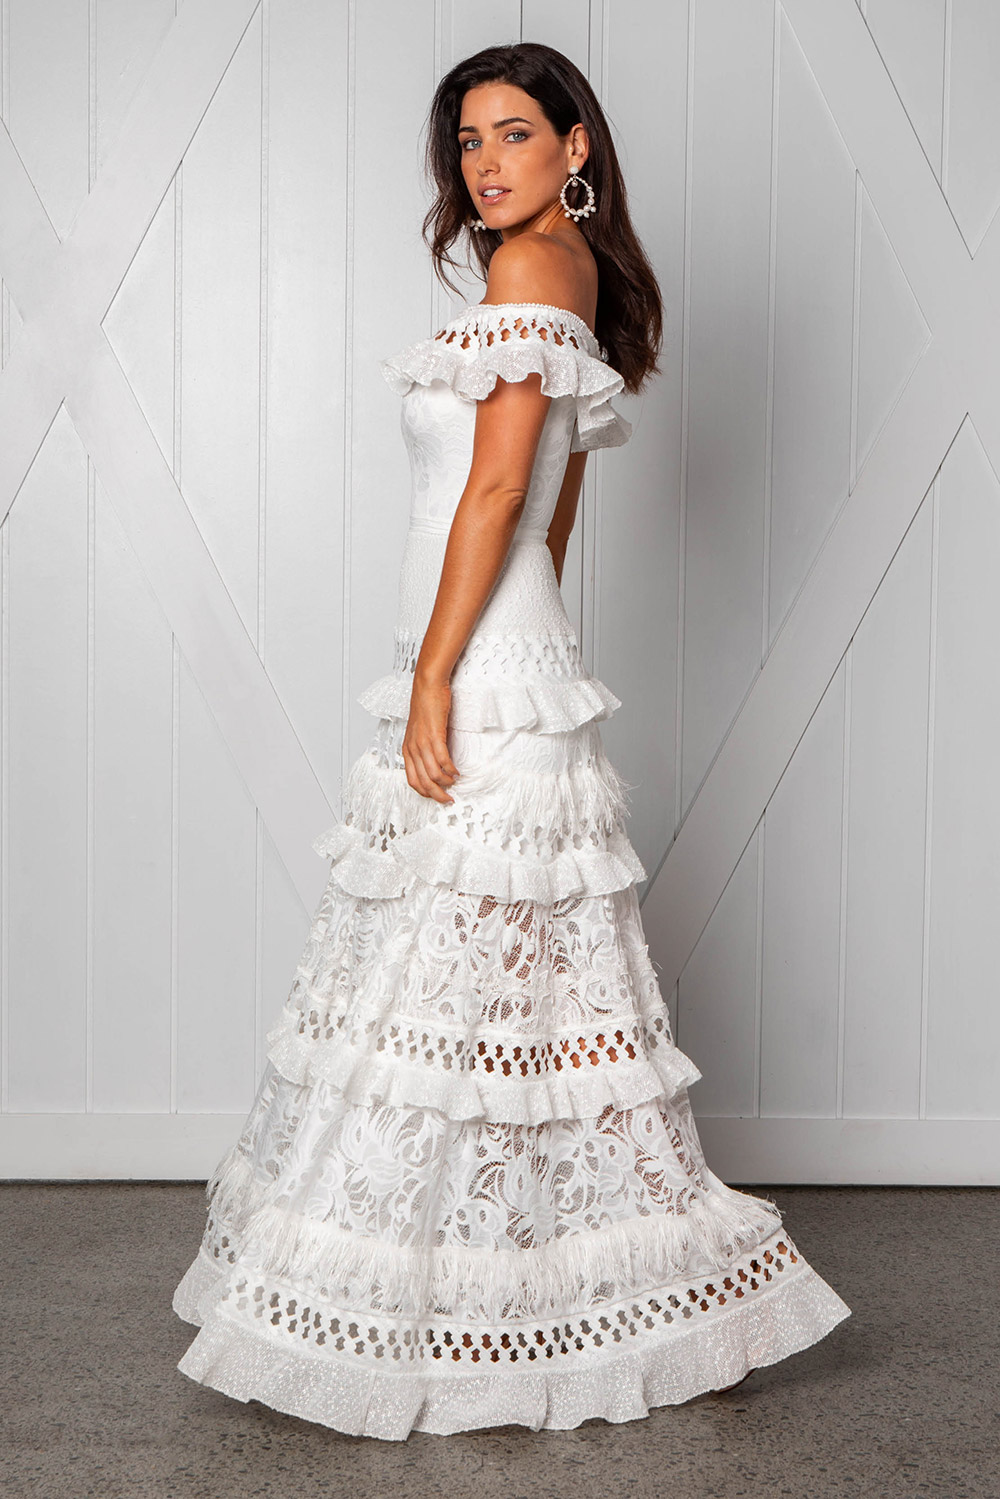 Coco - Grace Loves Lace 2018 Bridal Collection. www.theweddingnotebook.com